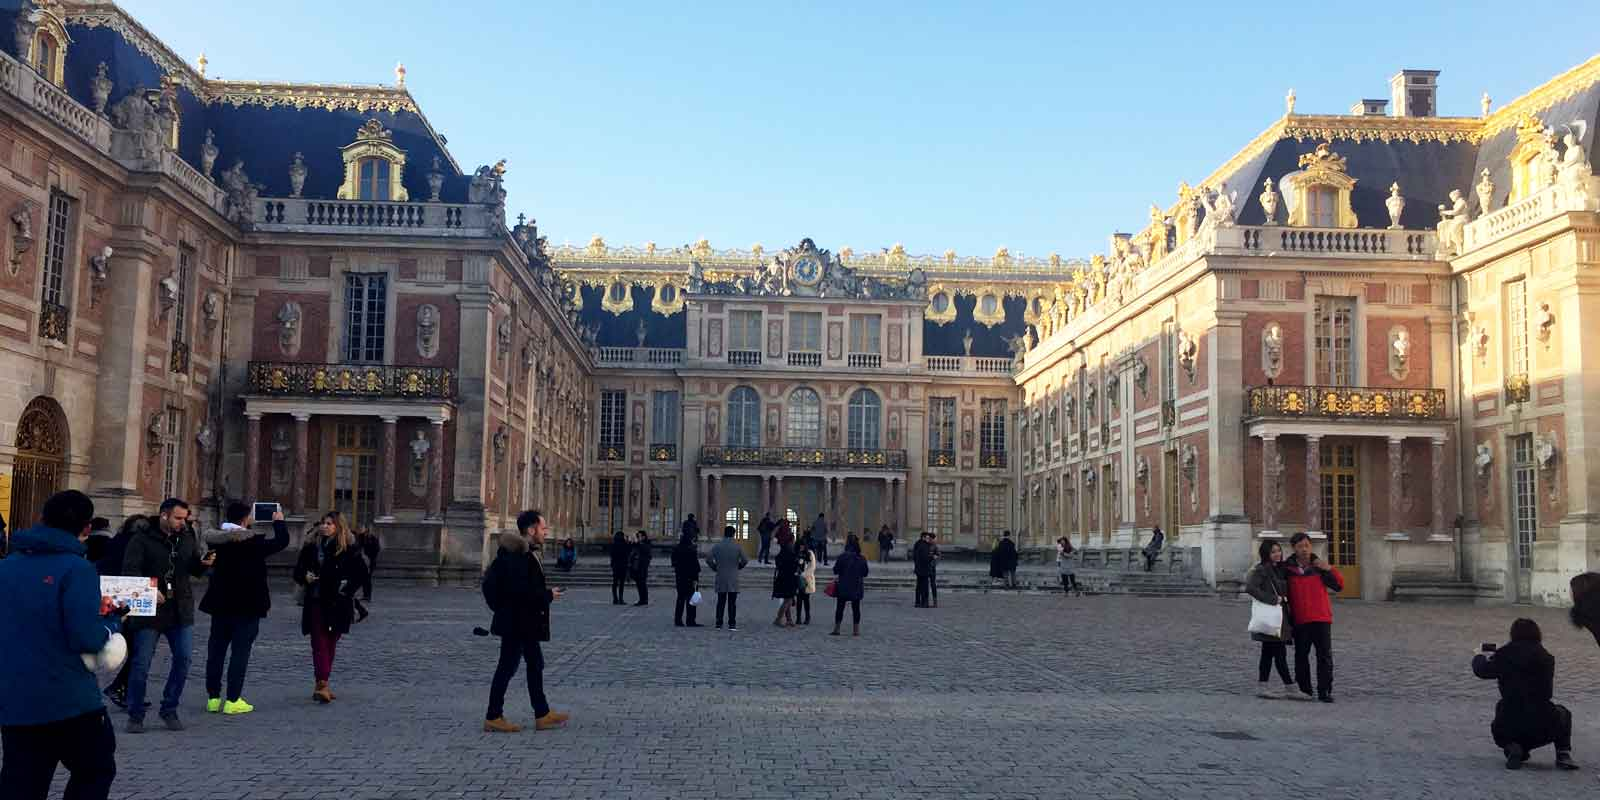 Landscape view of Château de Versailles from the courtyard